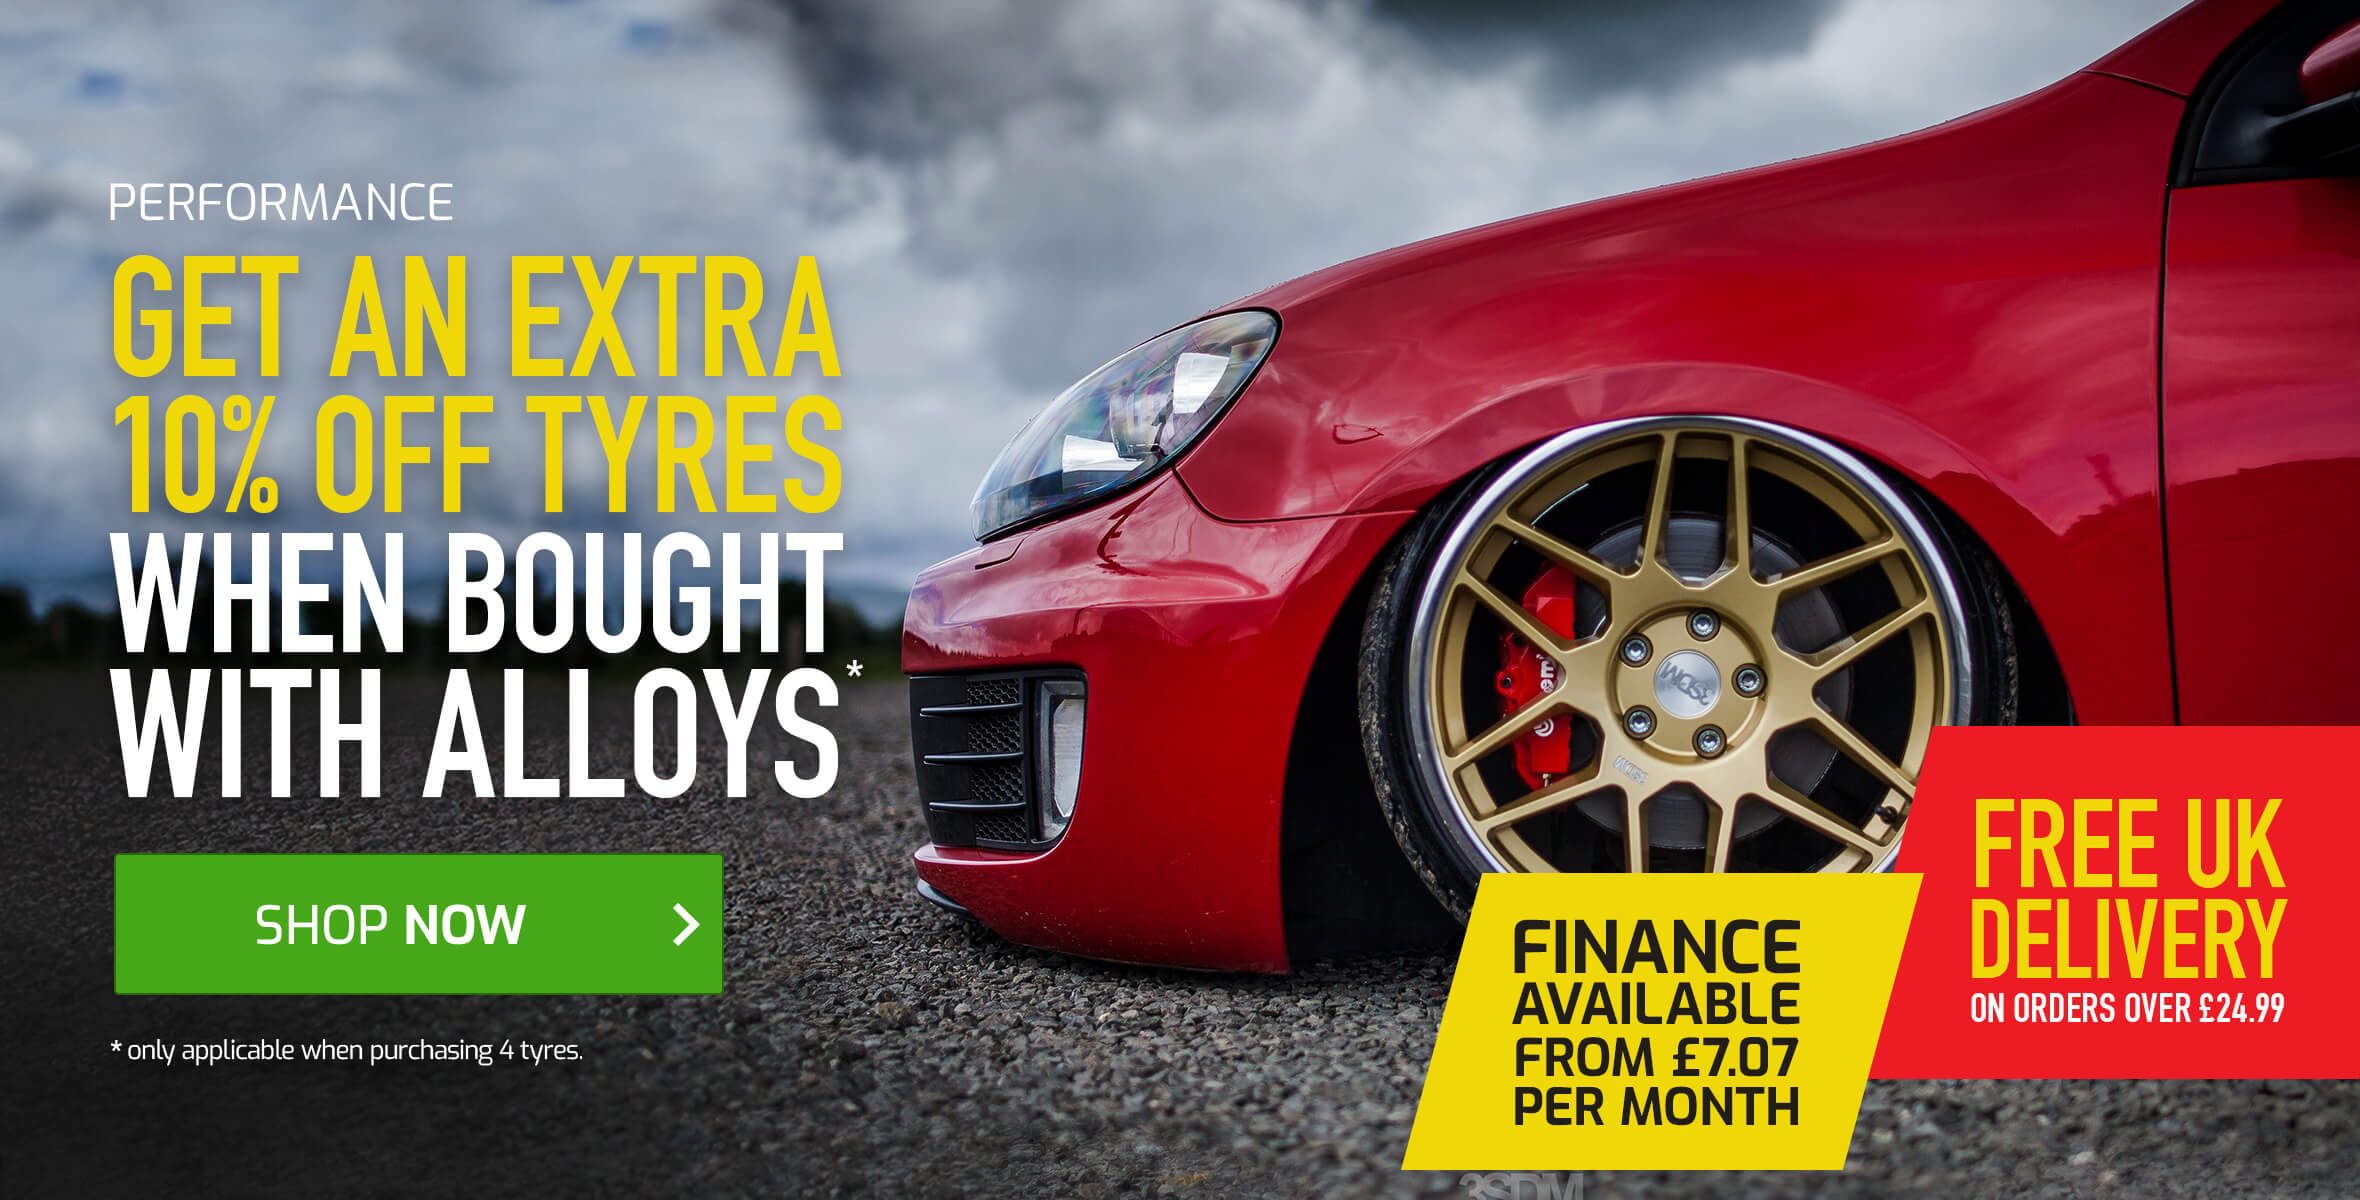 Save An Extra 10% off Tyres When Bought With Alloys